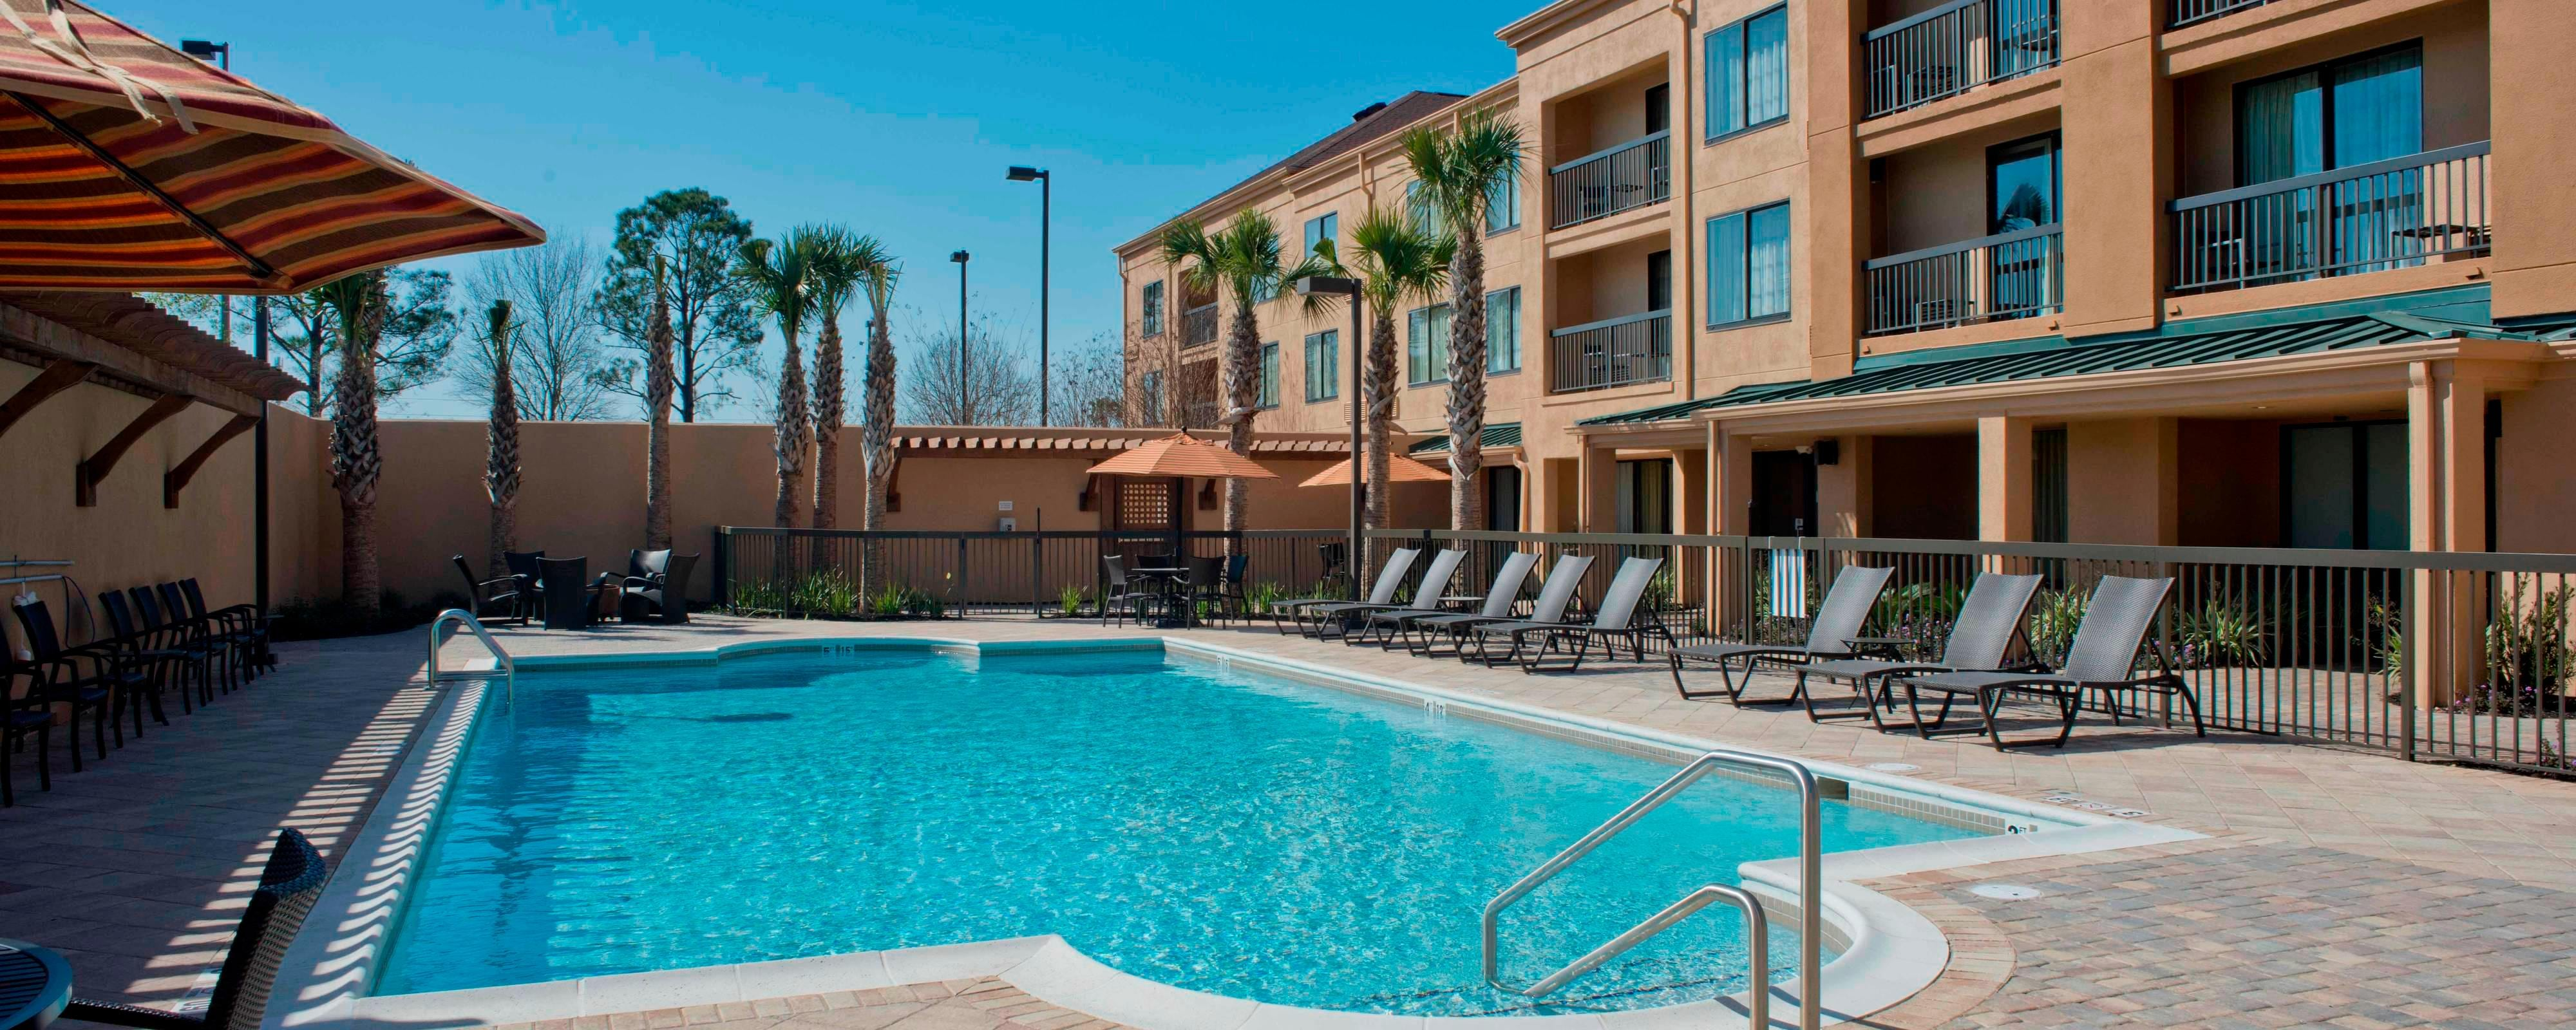 Outdoor Pool Courtyard Gulf Shores